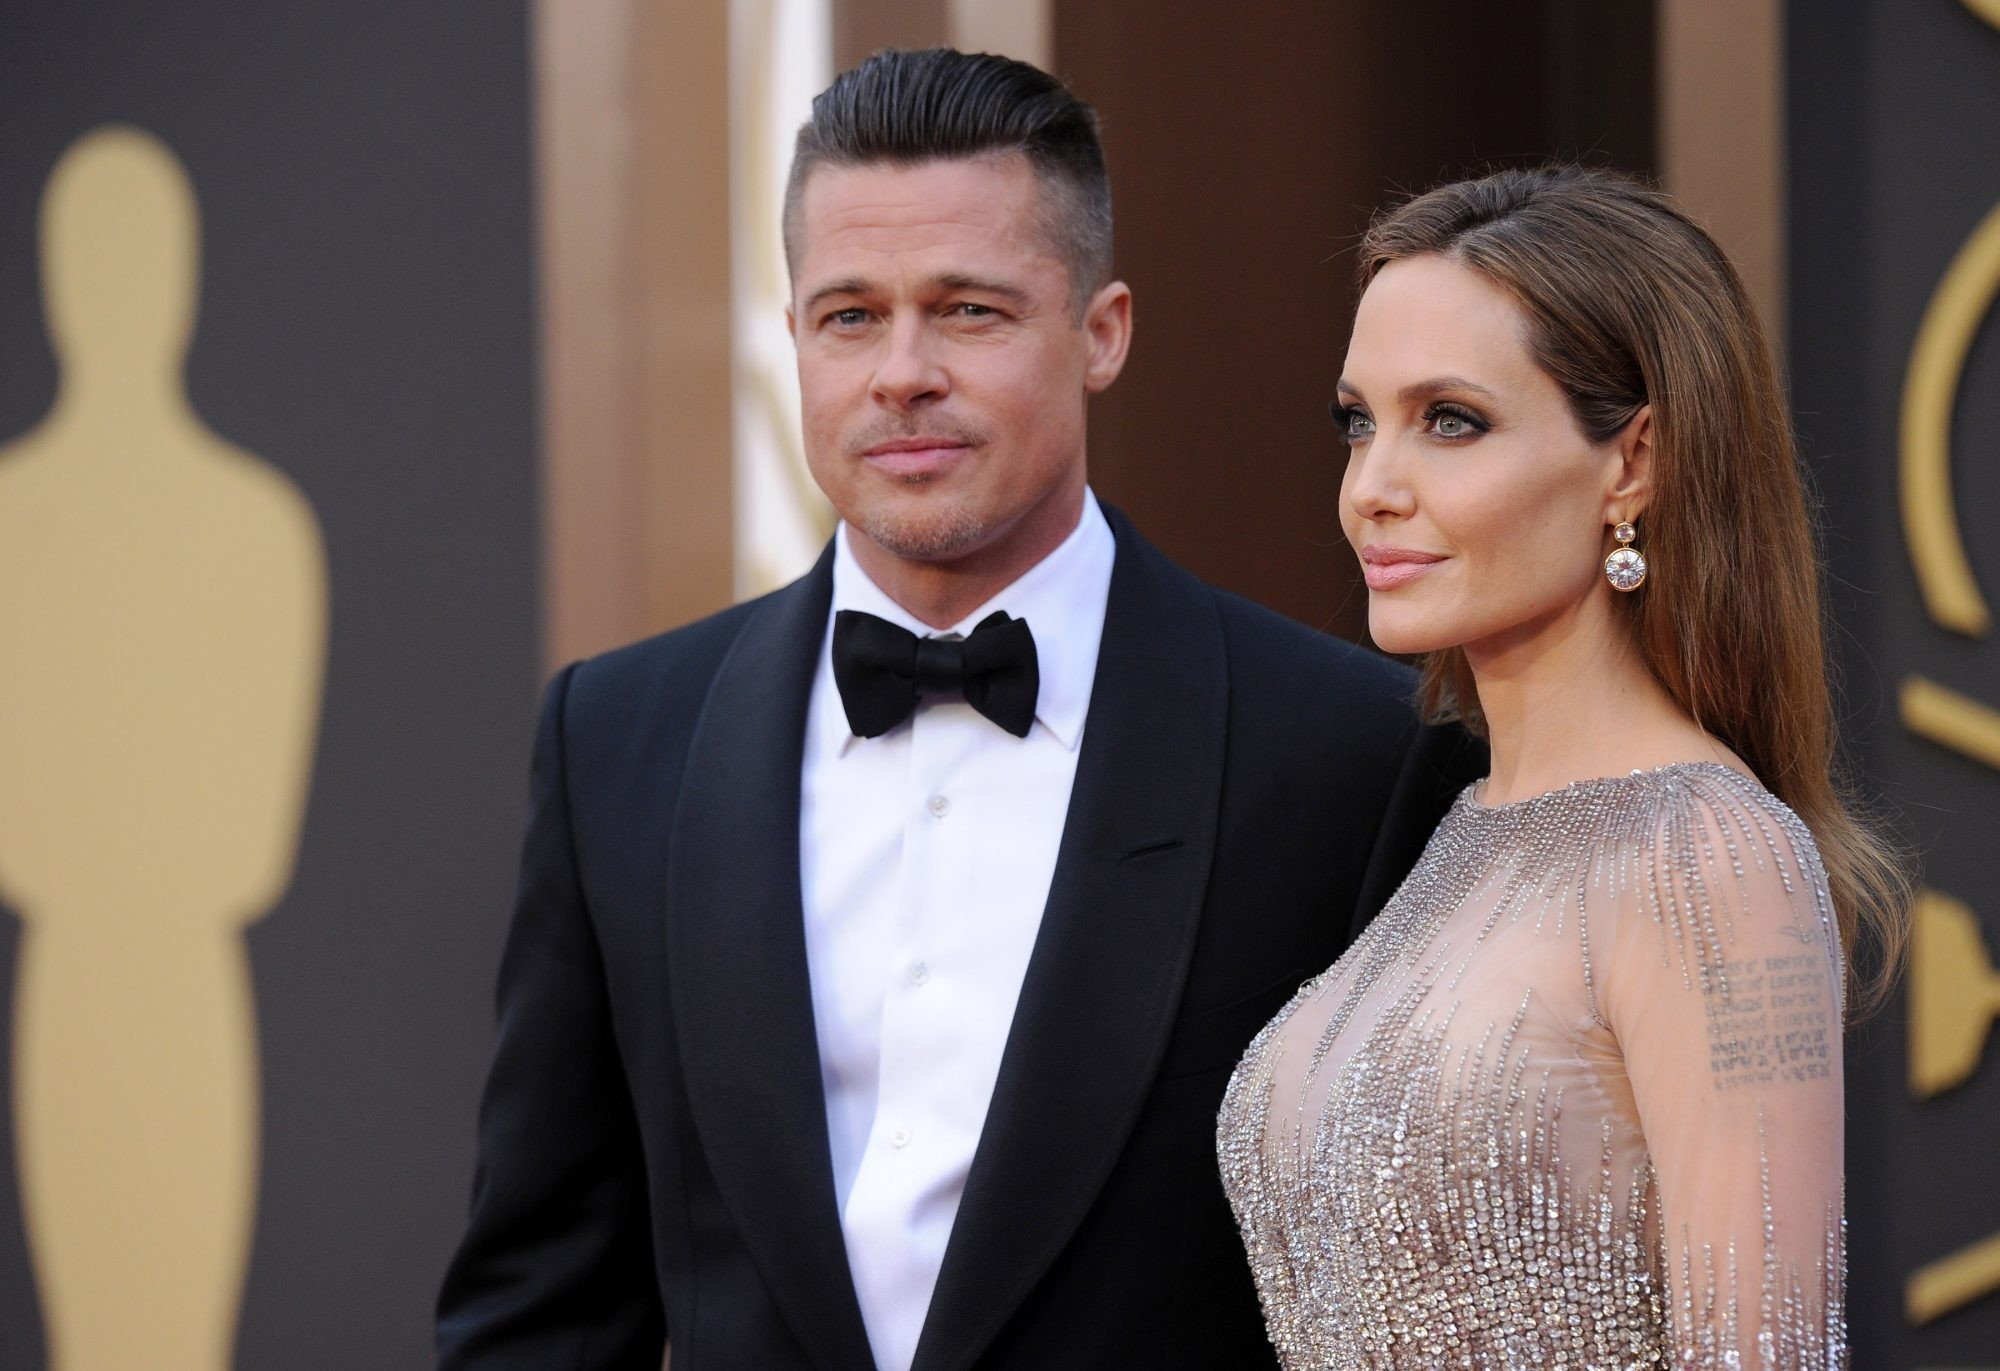 The Latest Complication in Angelina Jolie and Brad Pitt's Divorce Proceedings